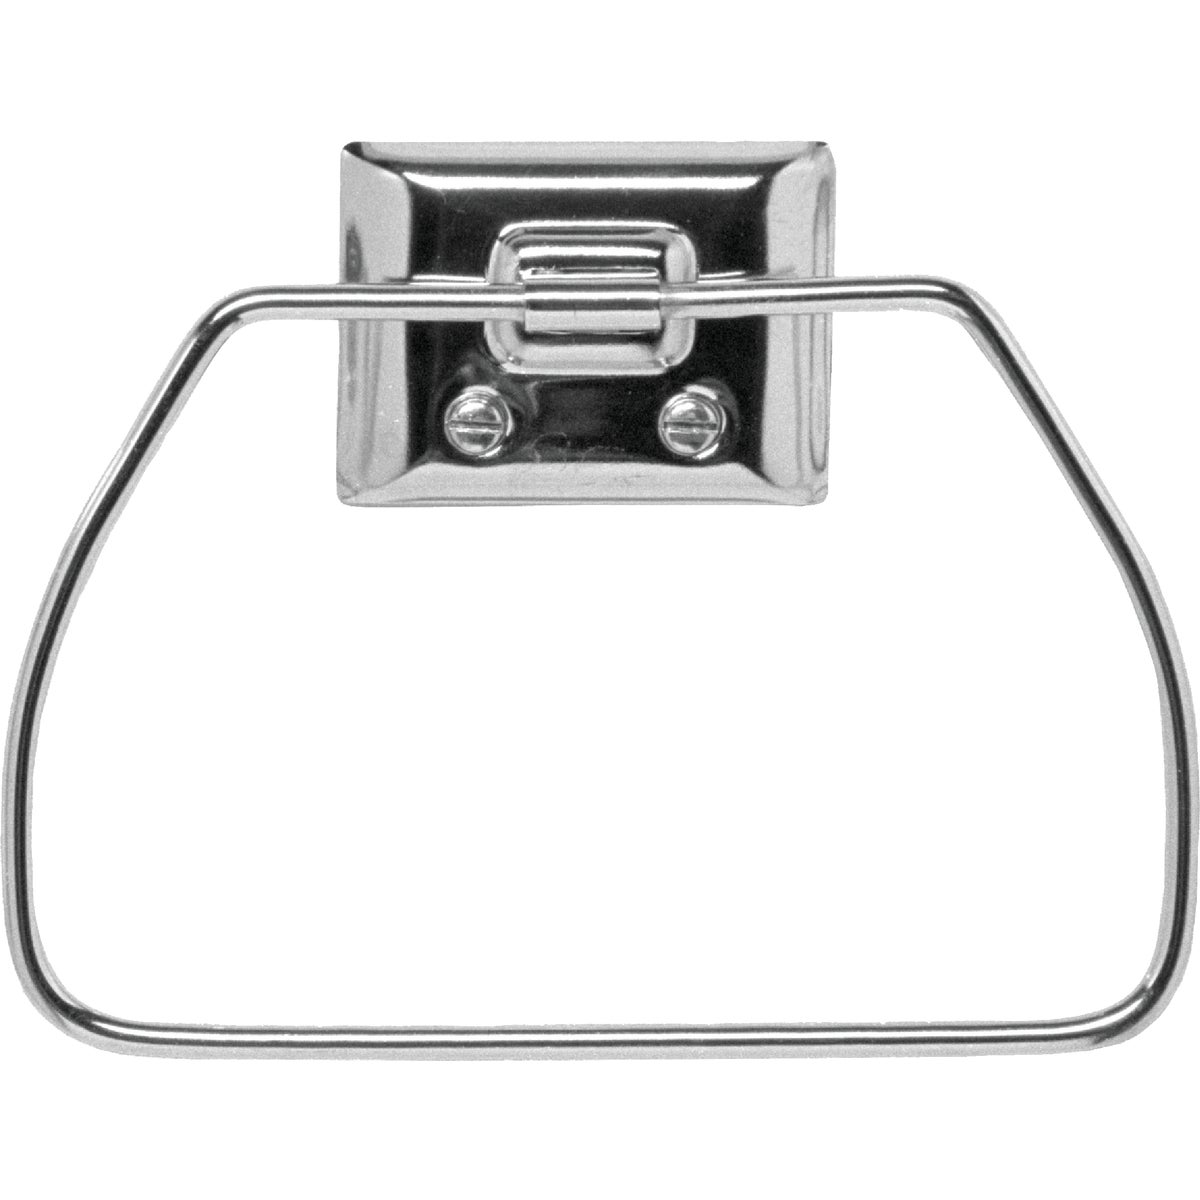 CHROME TOWEL RING - 38100 by Decko Bath